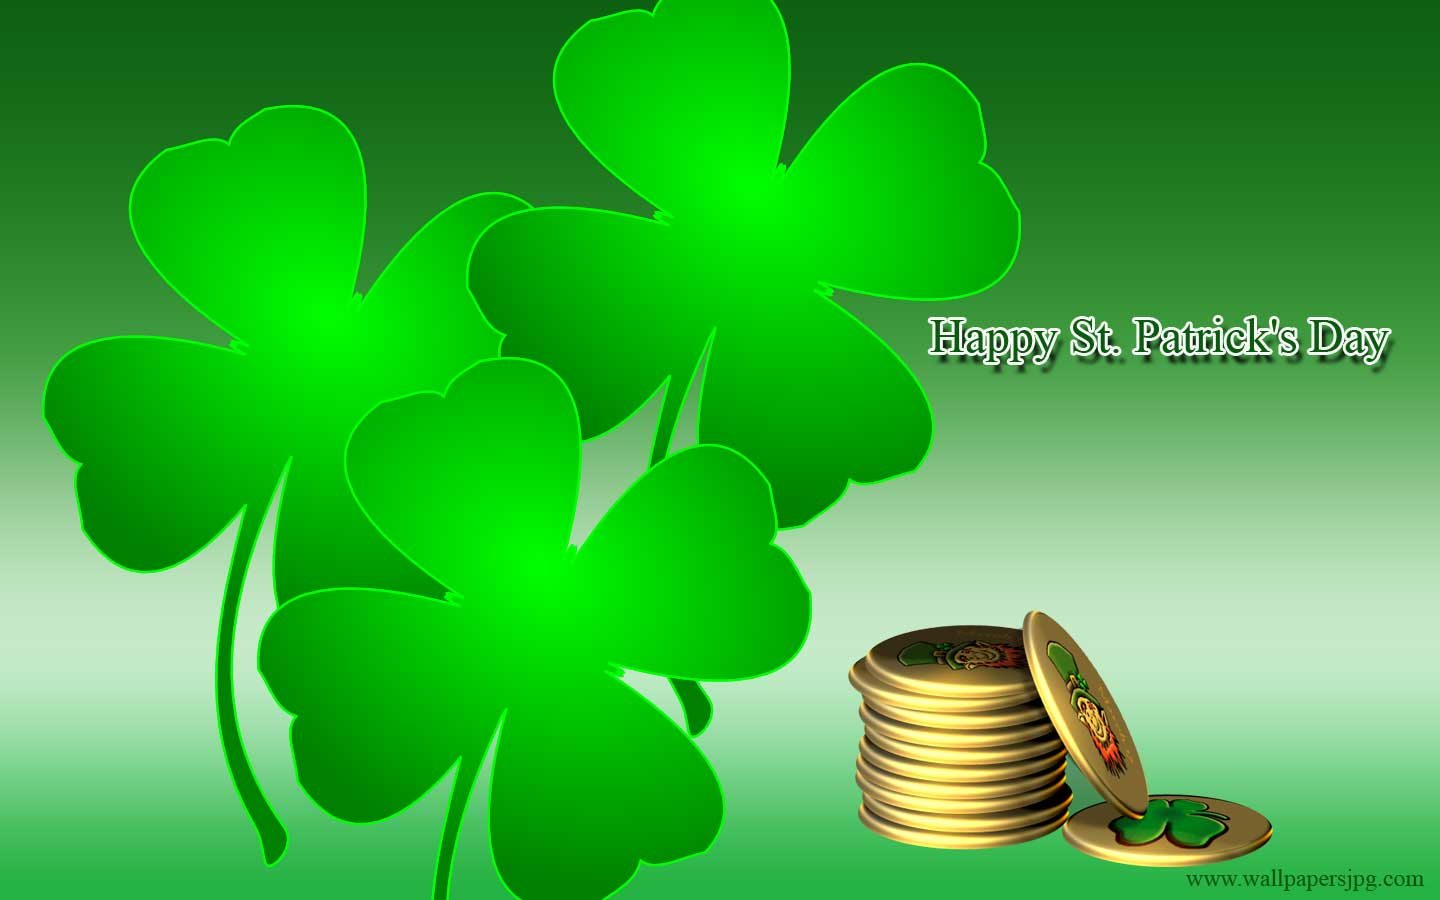 http://1.bp.blogspot.com/-081ckckkUOQ/T5OgwxVnfYI/AAAAAAAAIeQ/b7BDO5K8r3Q/s1600/happy_st_patricks_day_wallpaper_wishes_greetings_northern_ireland_christian_religion_festival_jesus(www.picturespool.blogspot.com)_08.jpg